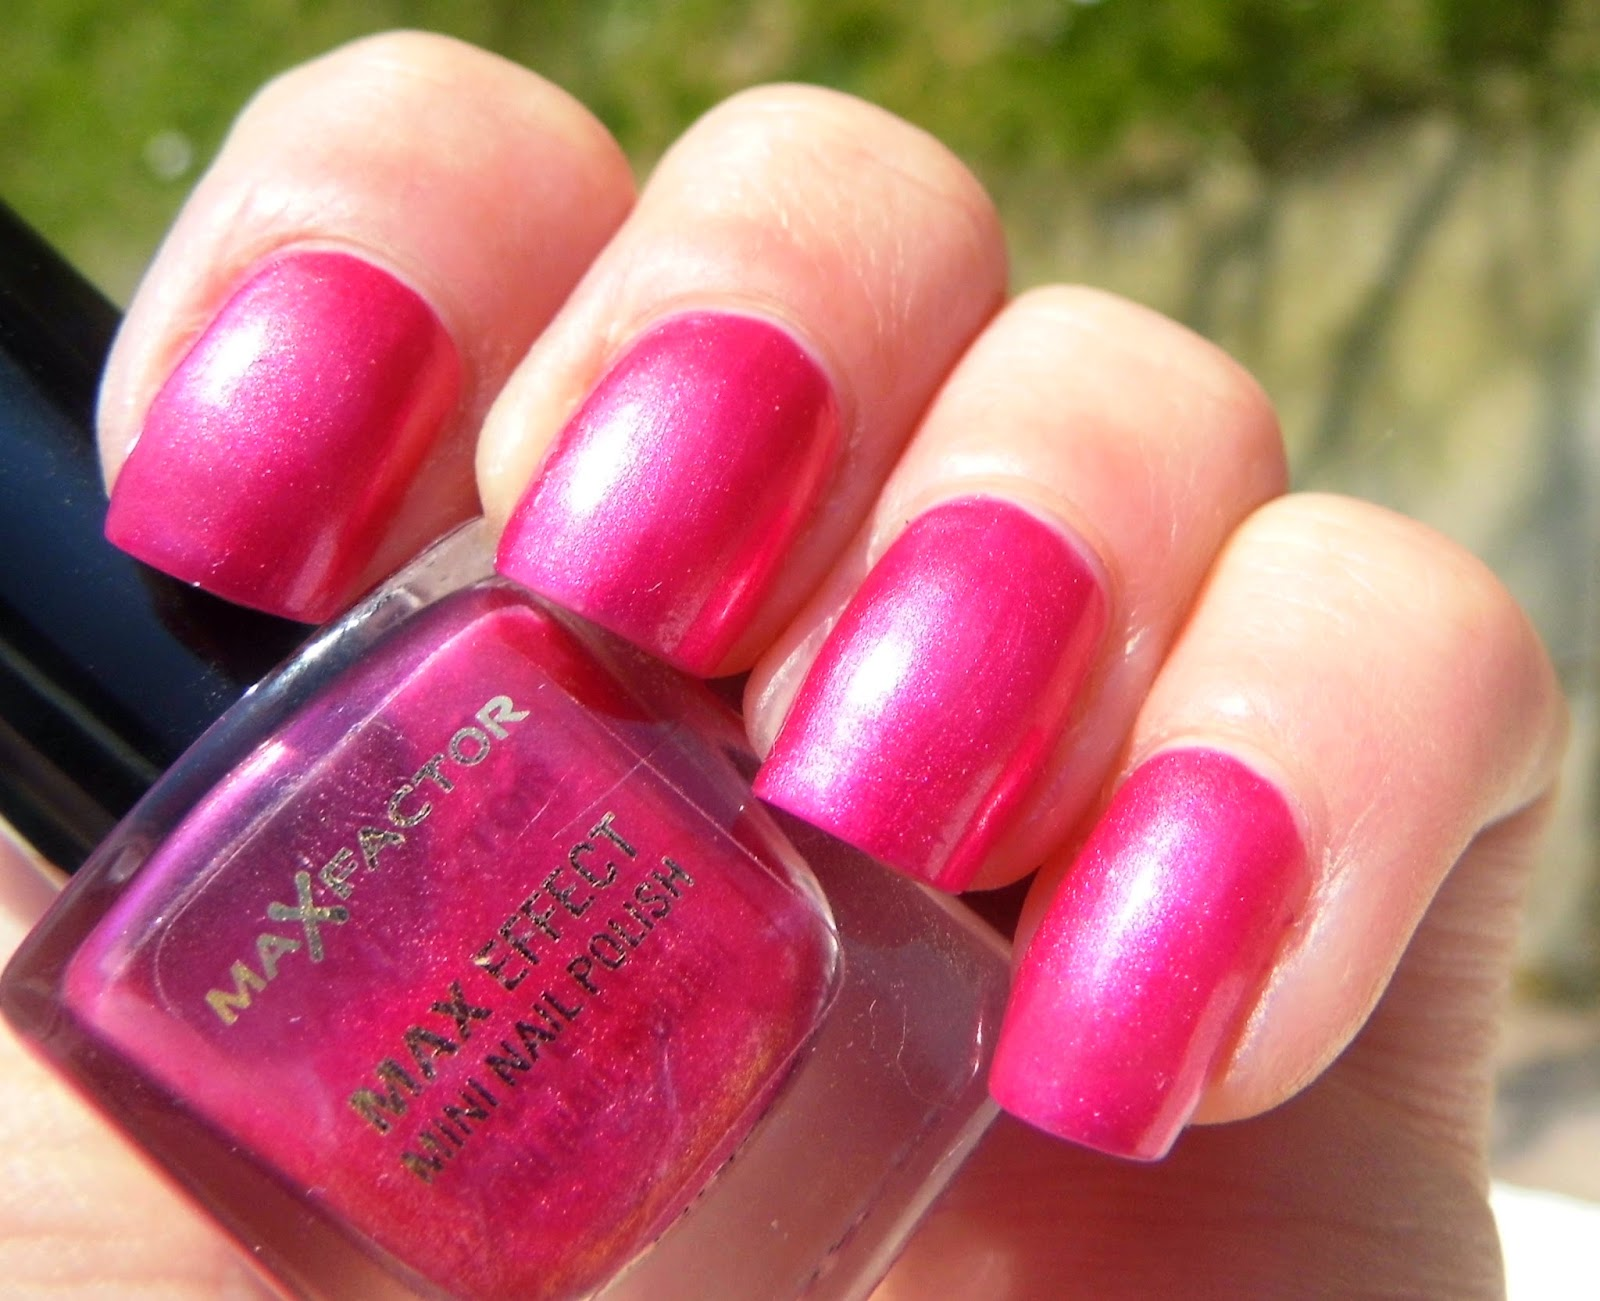 maxfactor-diva-pink-maxeffect-nail-polish-swatch-picture